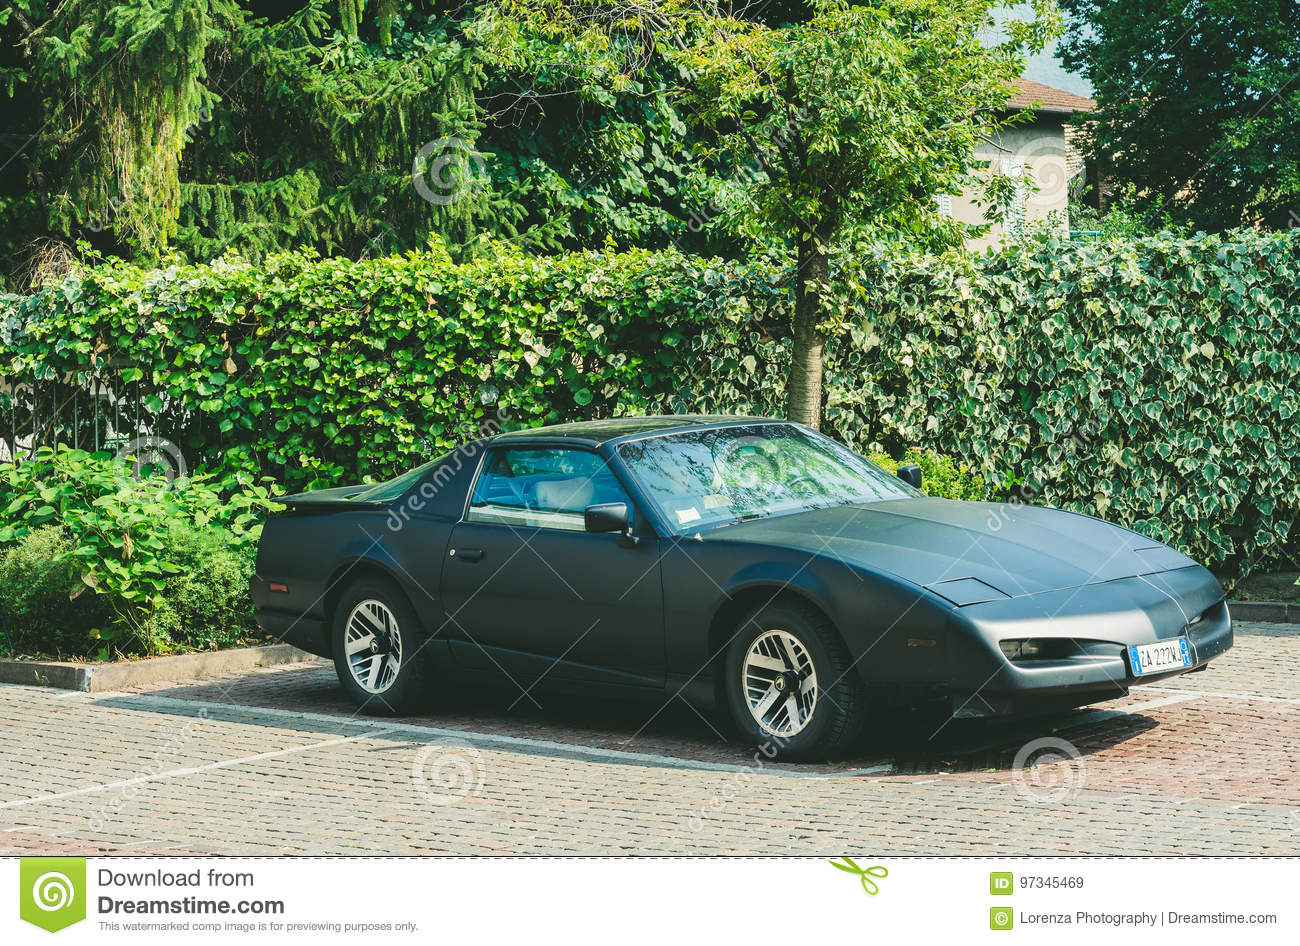 Trento, Italy: July 22, 2017: Meeting Of Classic Cars. Old Car On ...